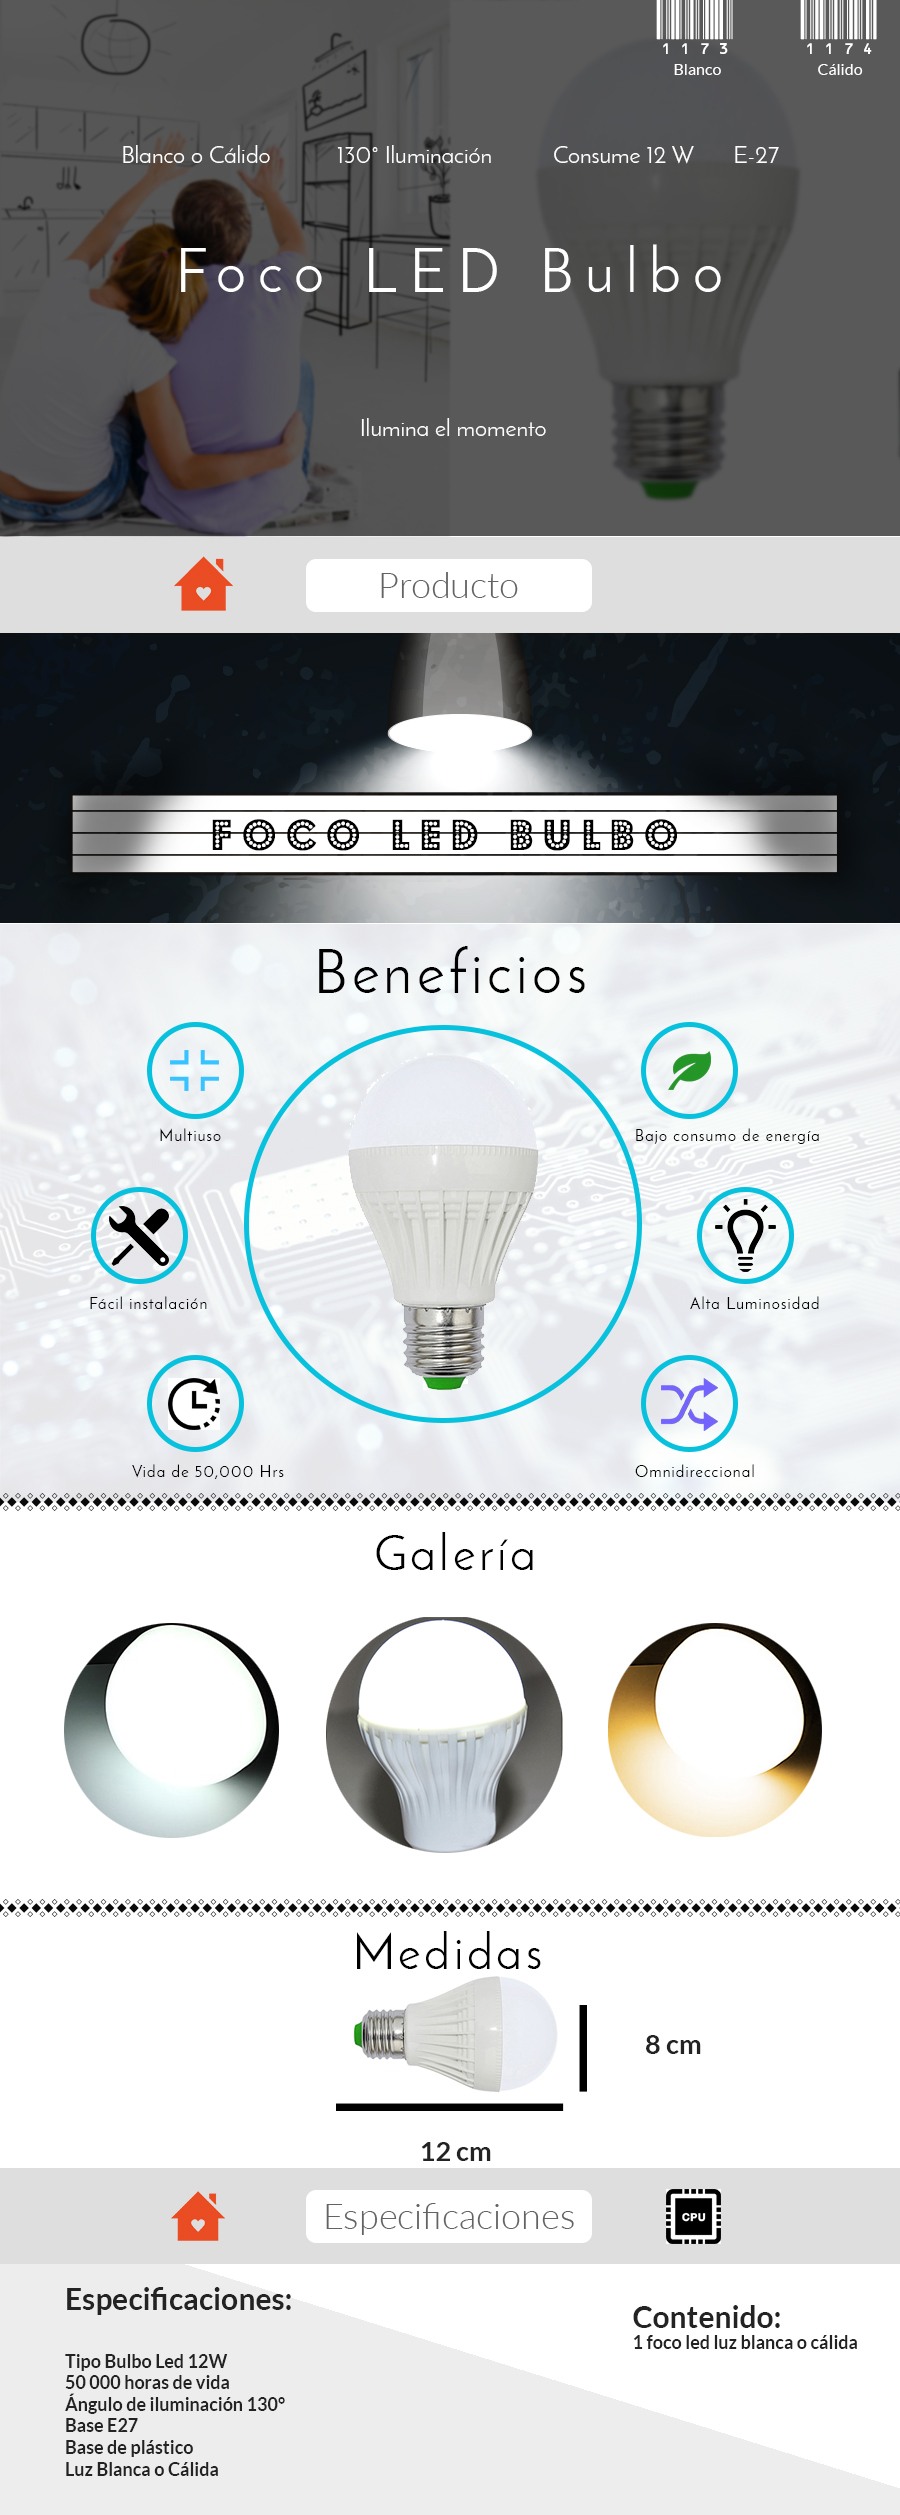 Foco tipo bulbo luz led blanca o calida 12w e27 1173 for Luz blanca o calida